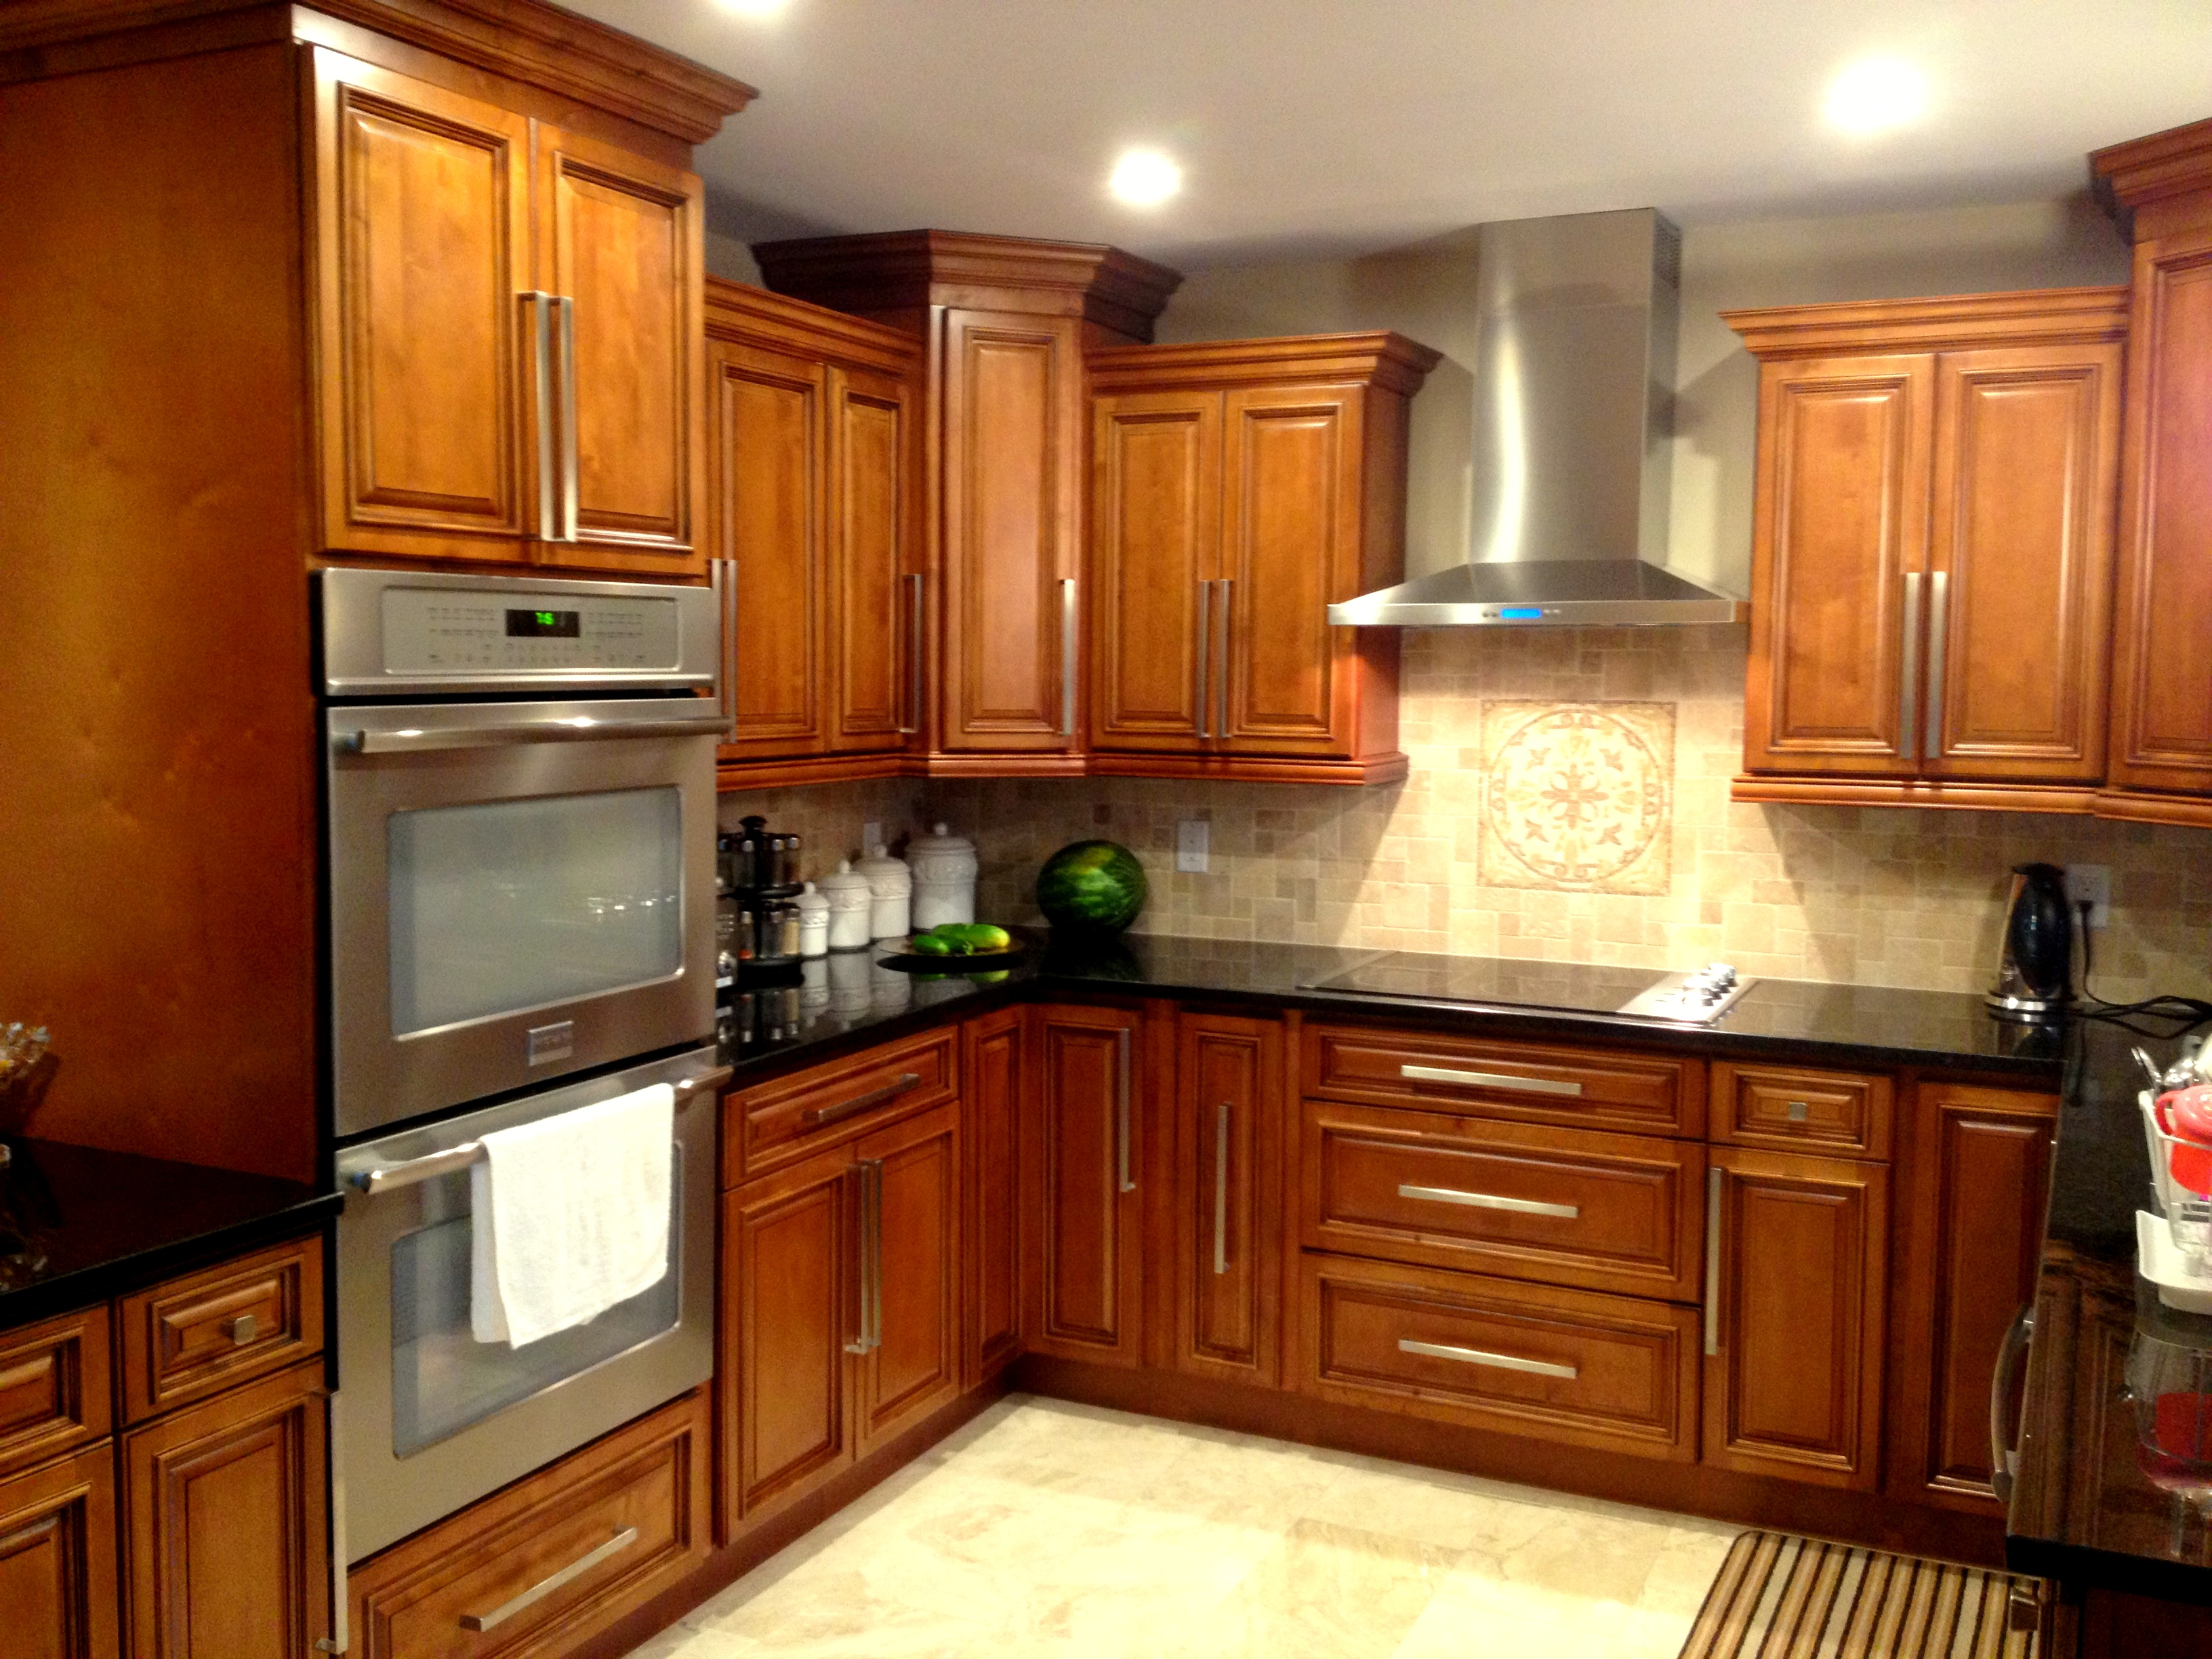 Rta kitchen cabinets color choices for Kitchen cabinet wood colors